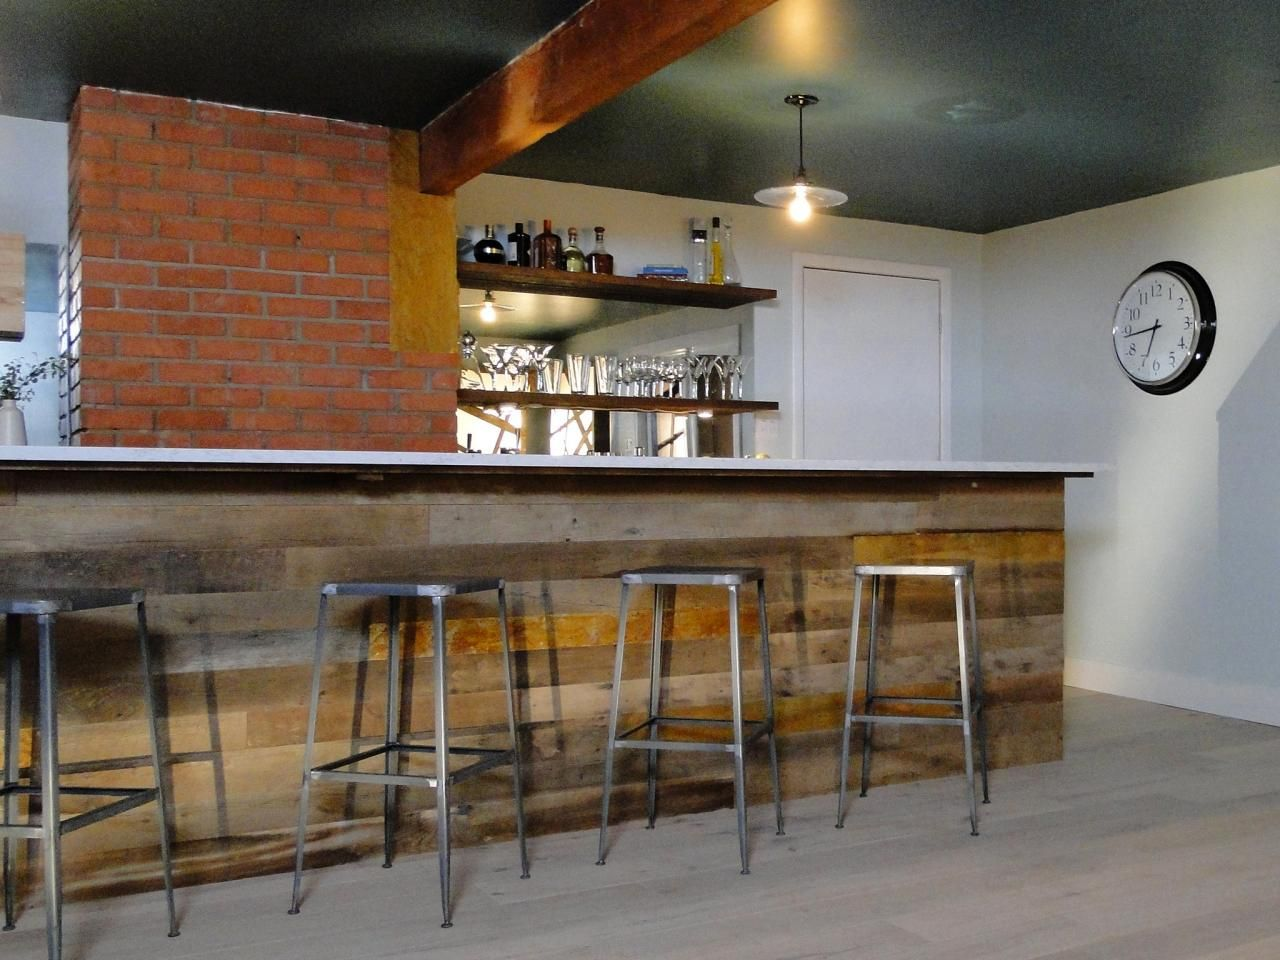 Ordinaire Bar In Basement Ideas. Bar In Basement Ideas X